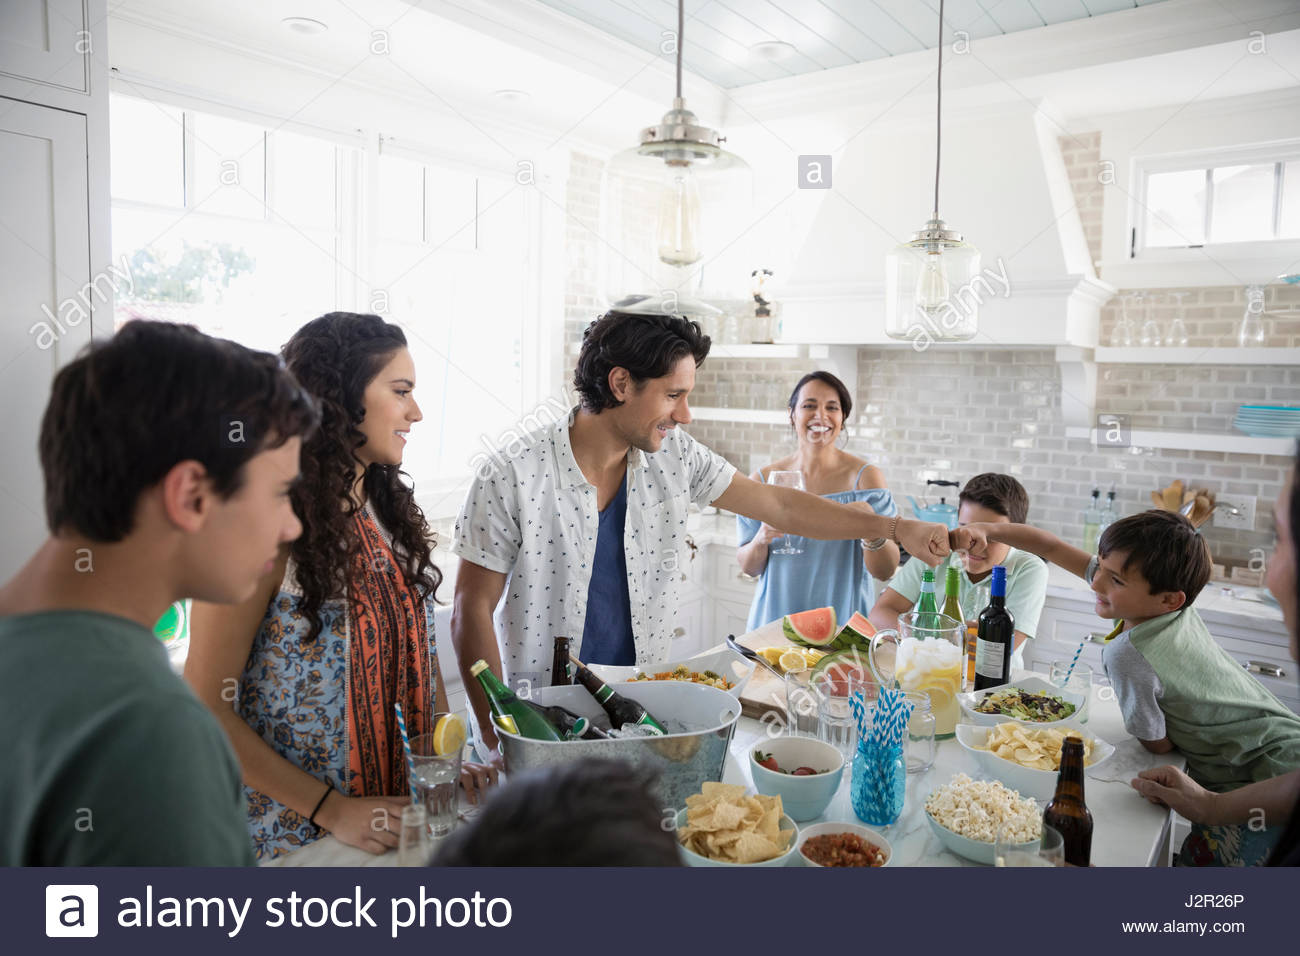 Family and friends drinking and eating in beach house kitchen, father and son fist bump - Stock Image